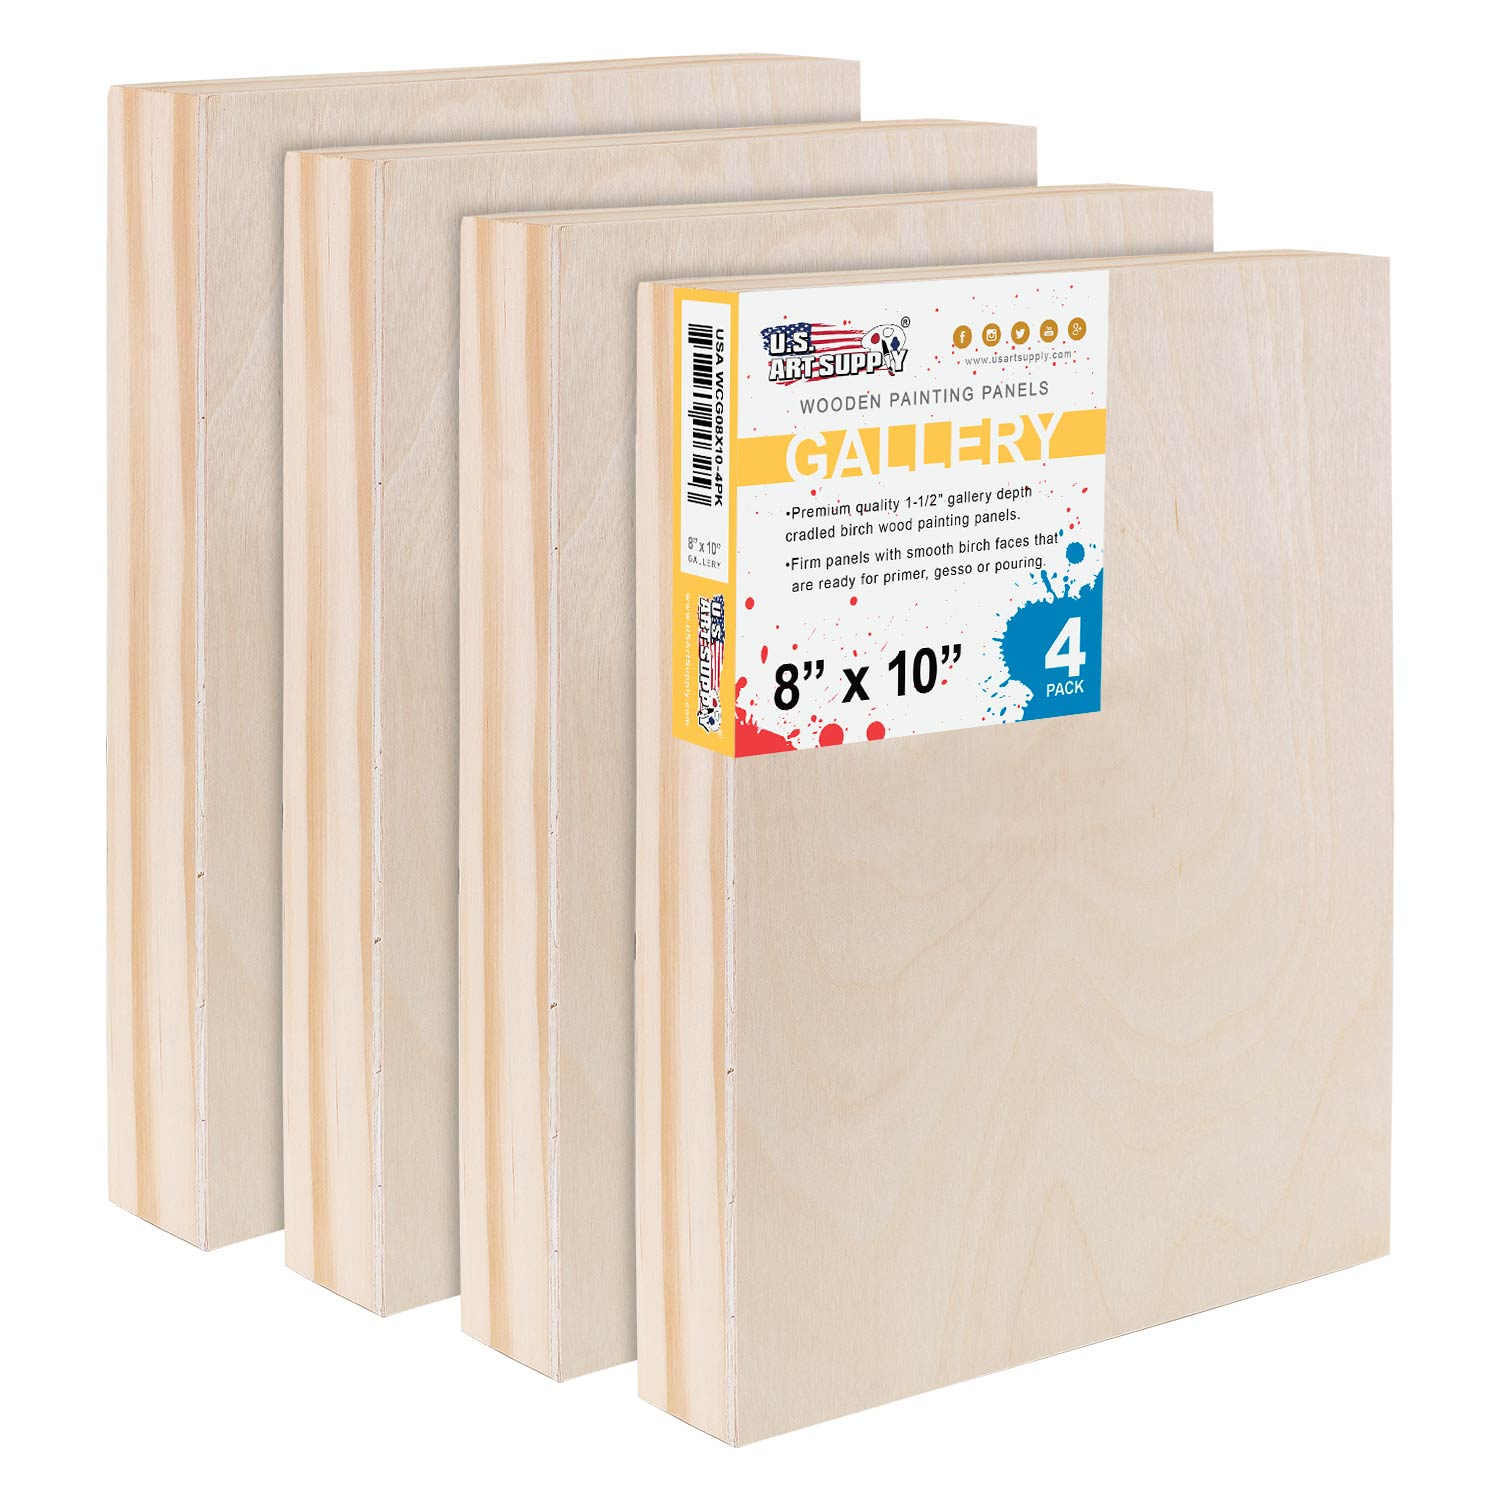 """U.S. Art Supply 8"""" x 10"""" Birch Wood Paint Pouring Panel Boards, Gallery 1-1/2"""" Deep Cradle (Pack of 4)"""